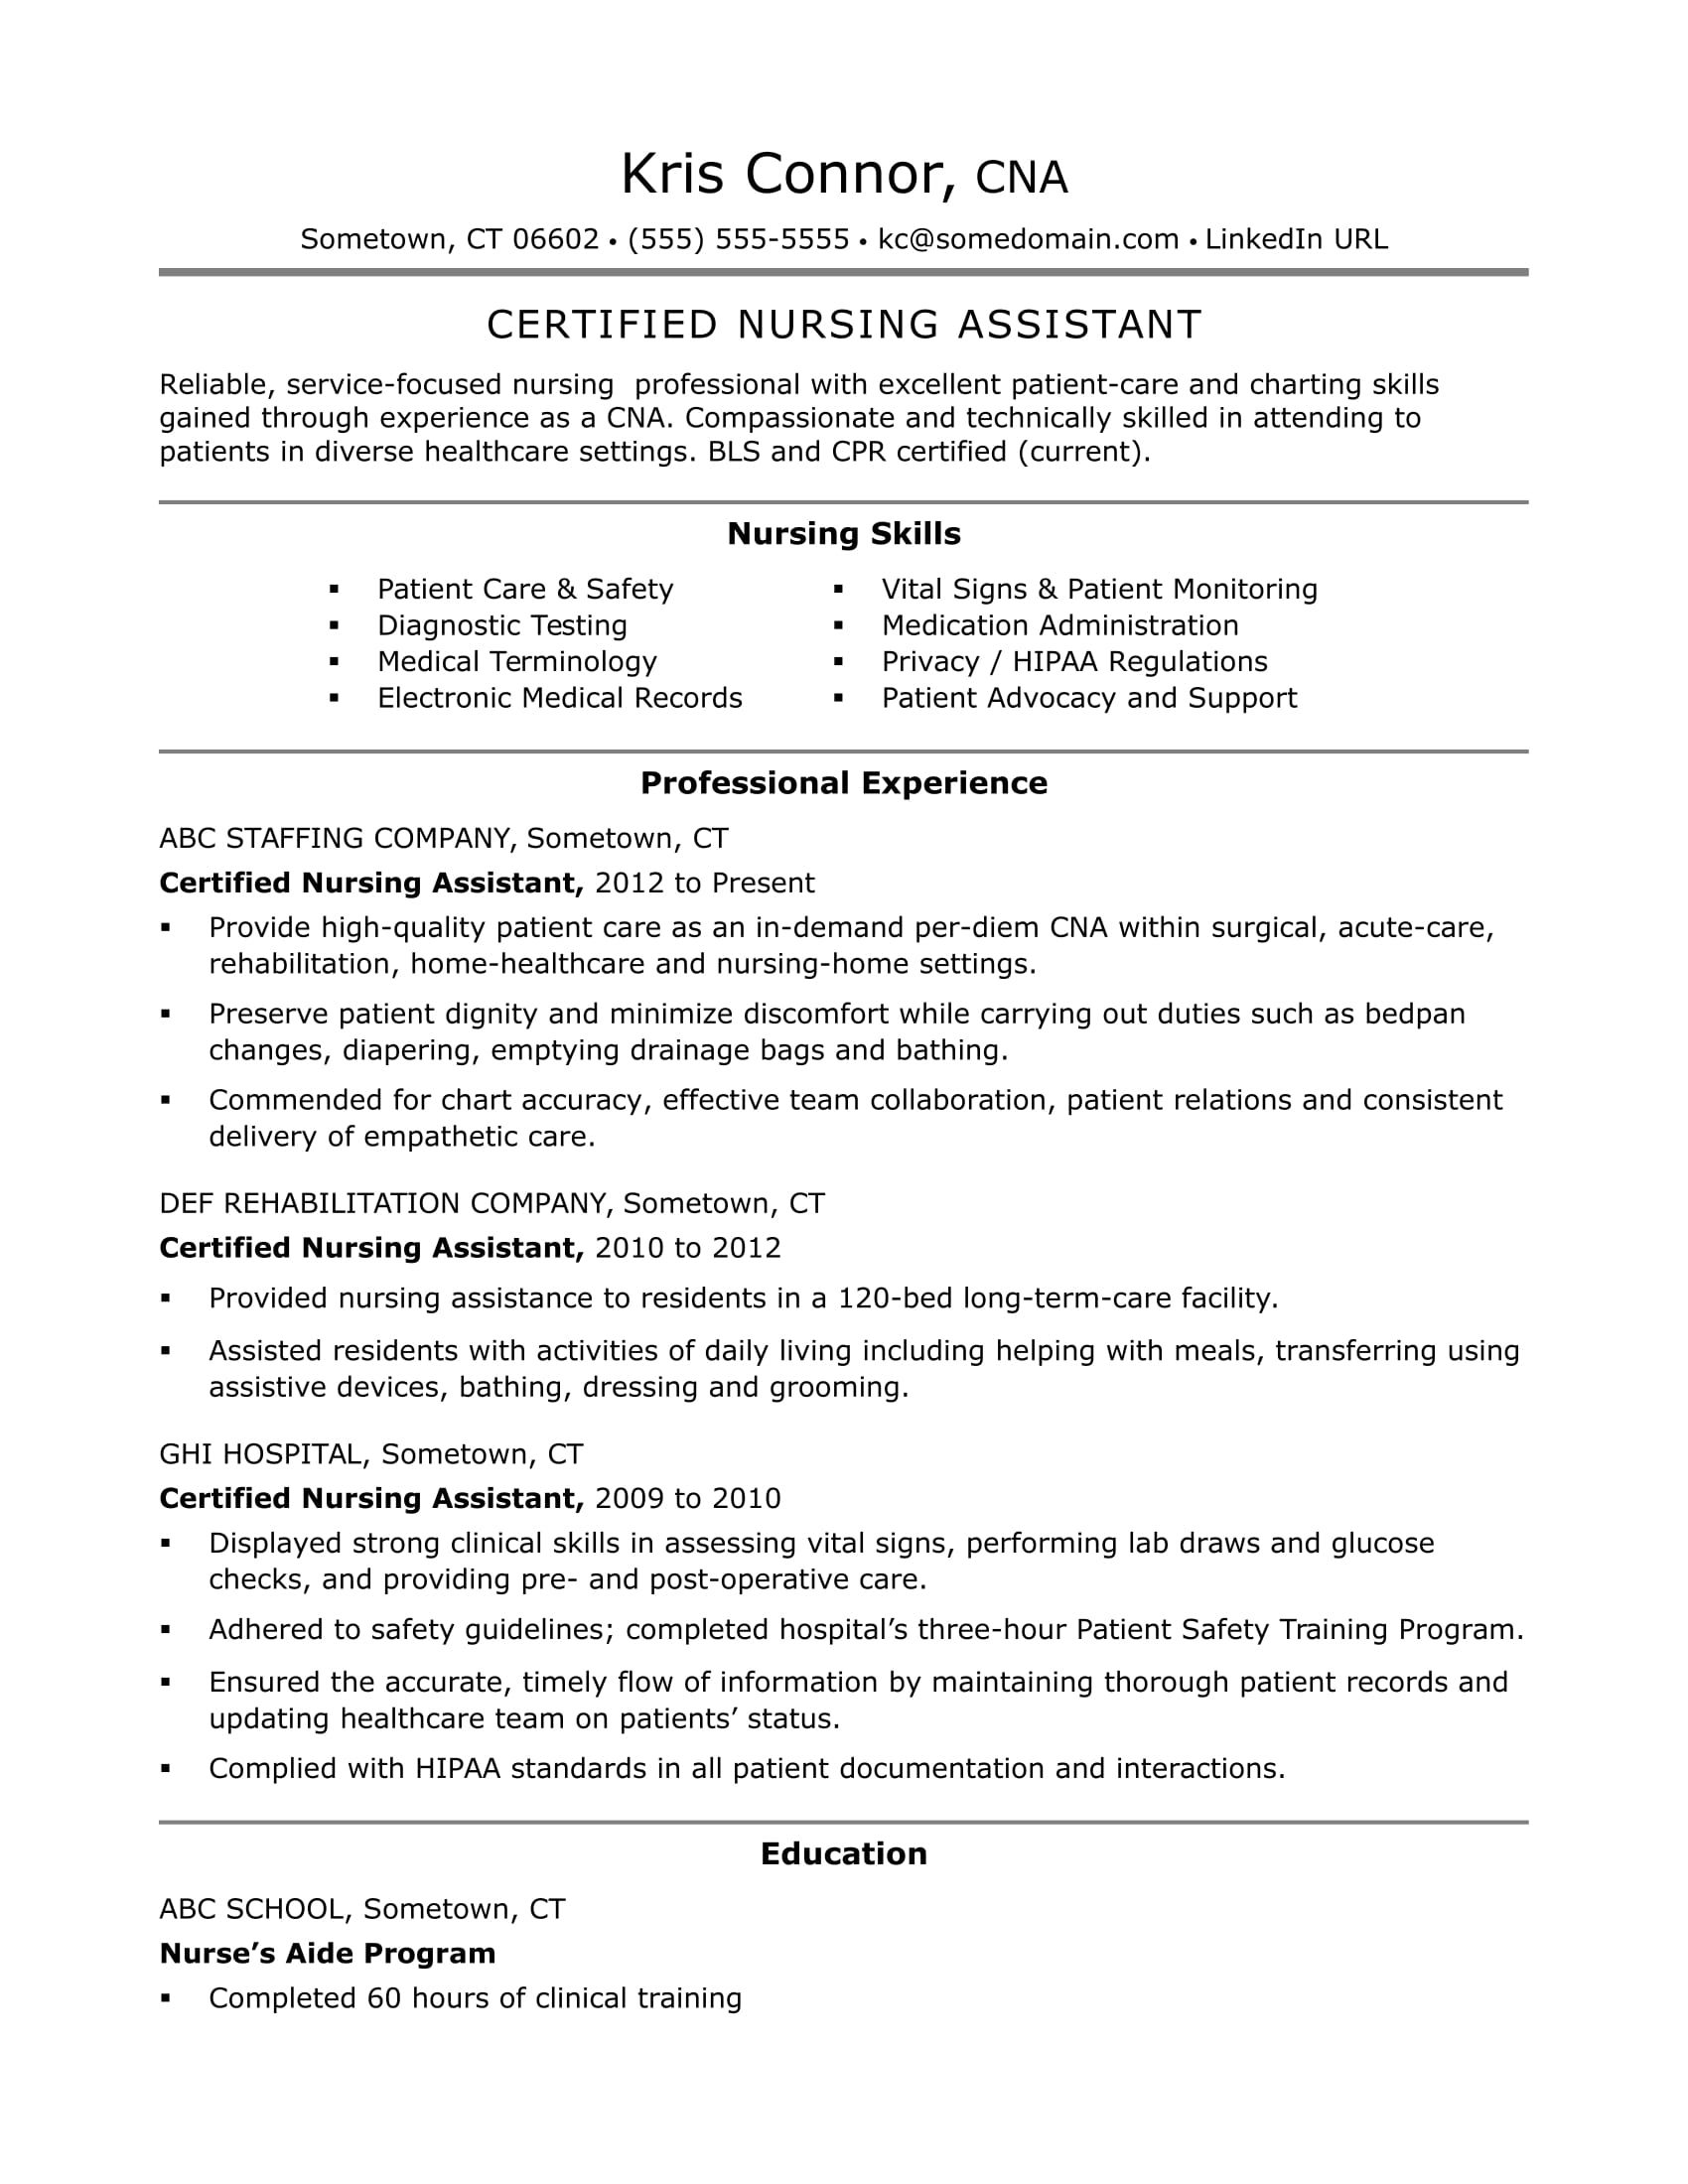 cna resume example skill resume samples - Examples Of Skills On A Resume